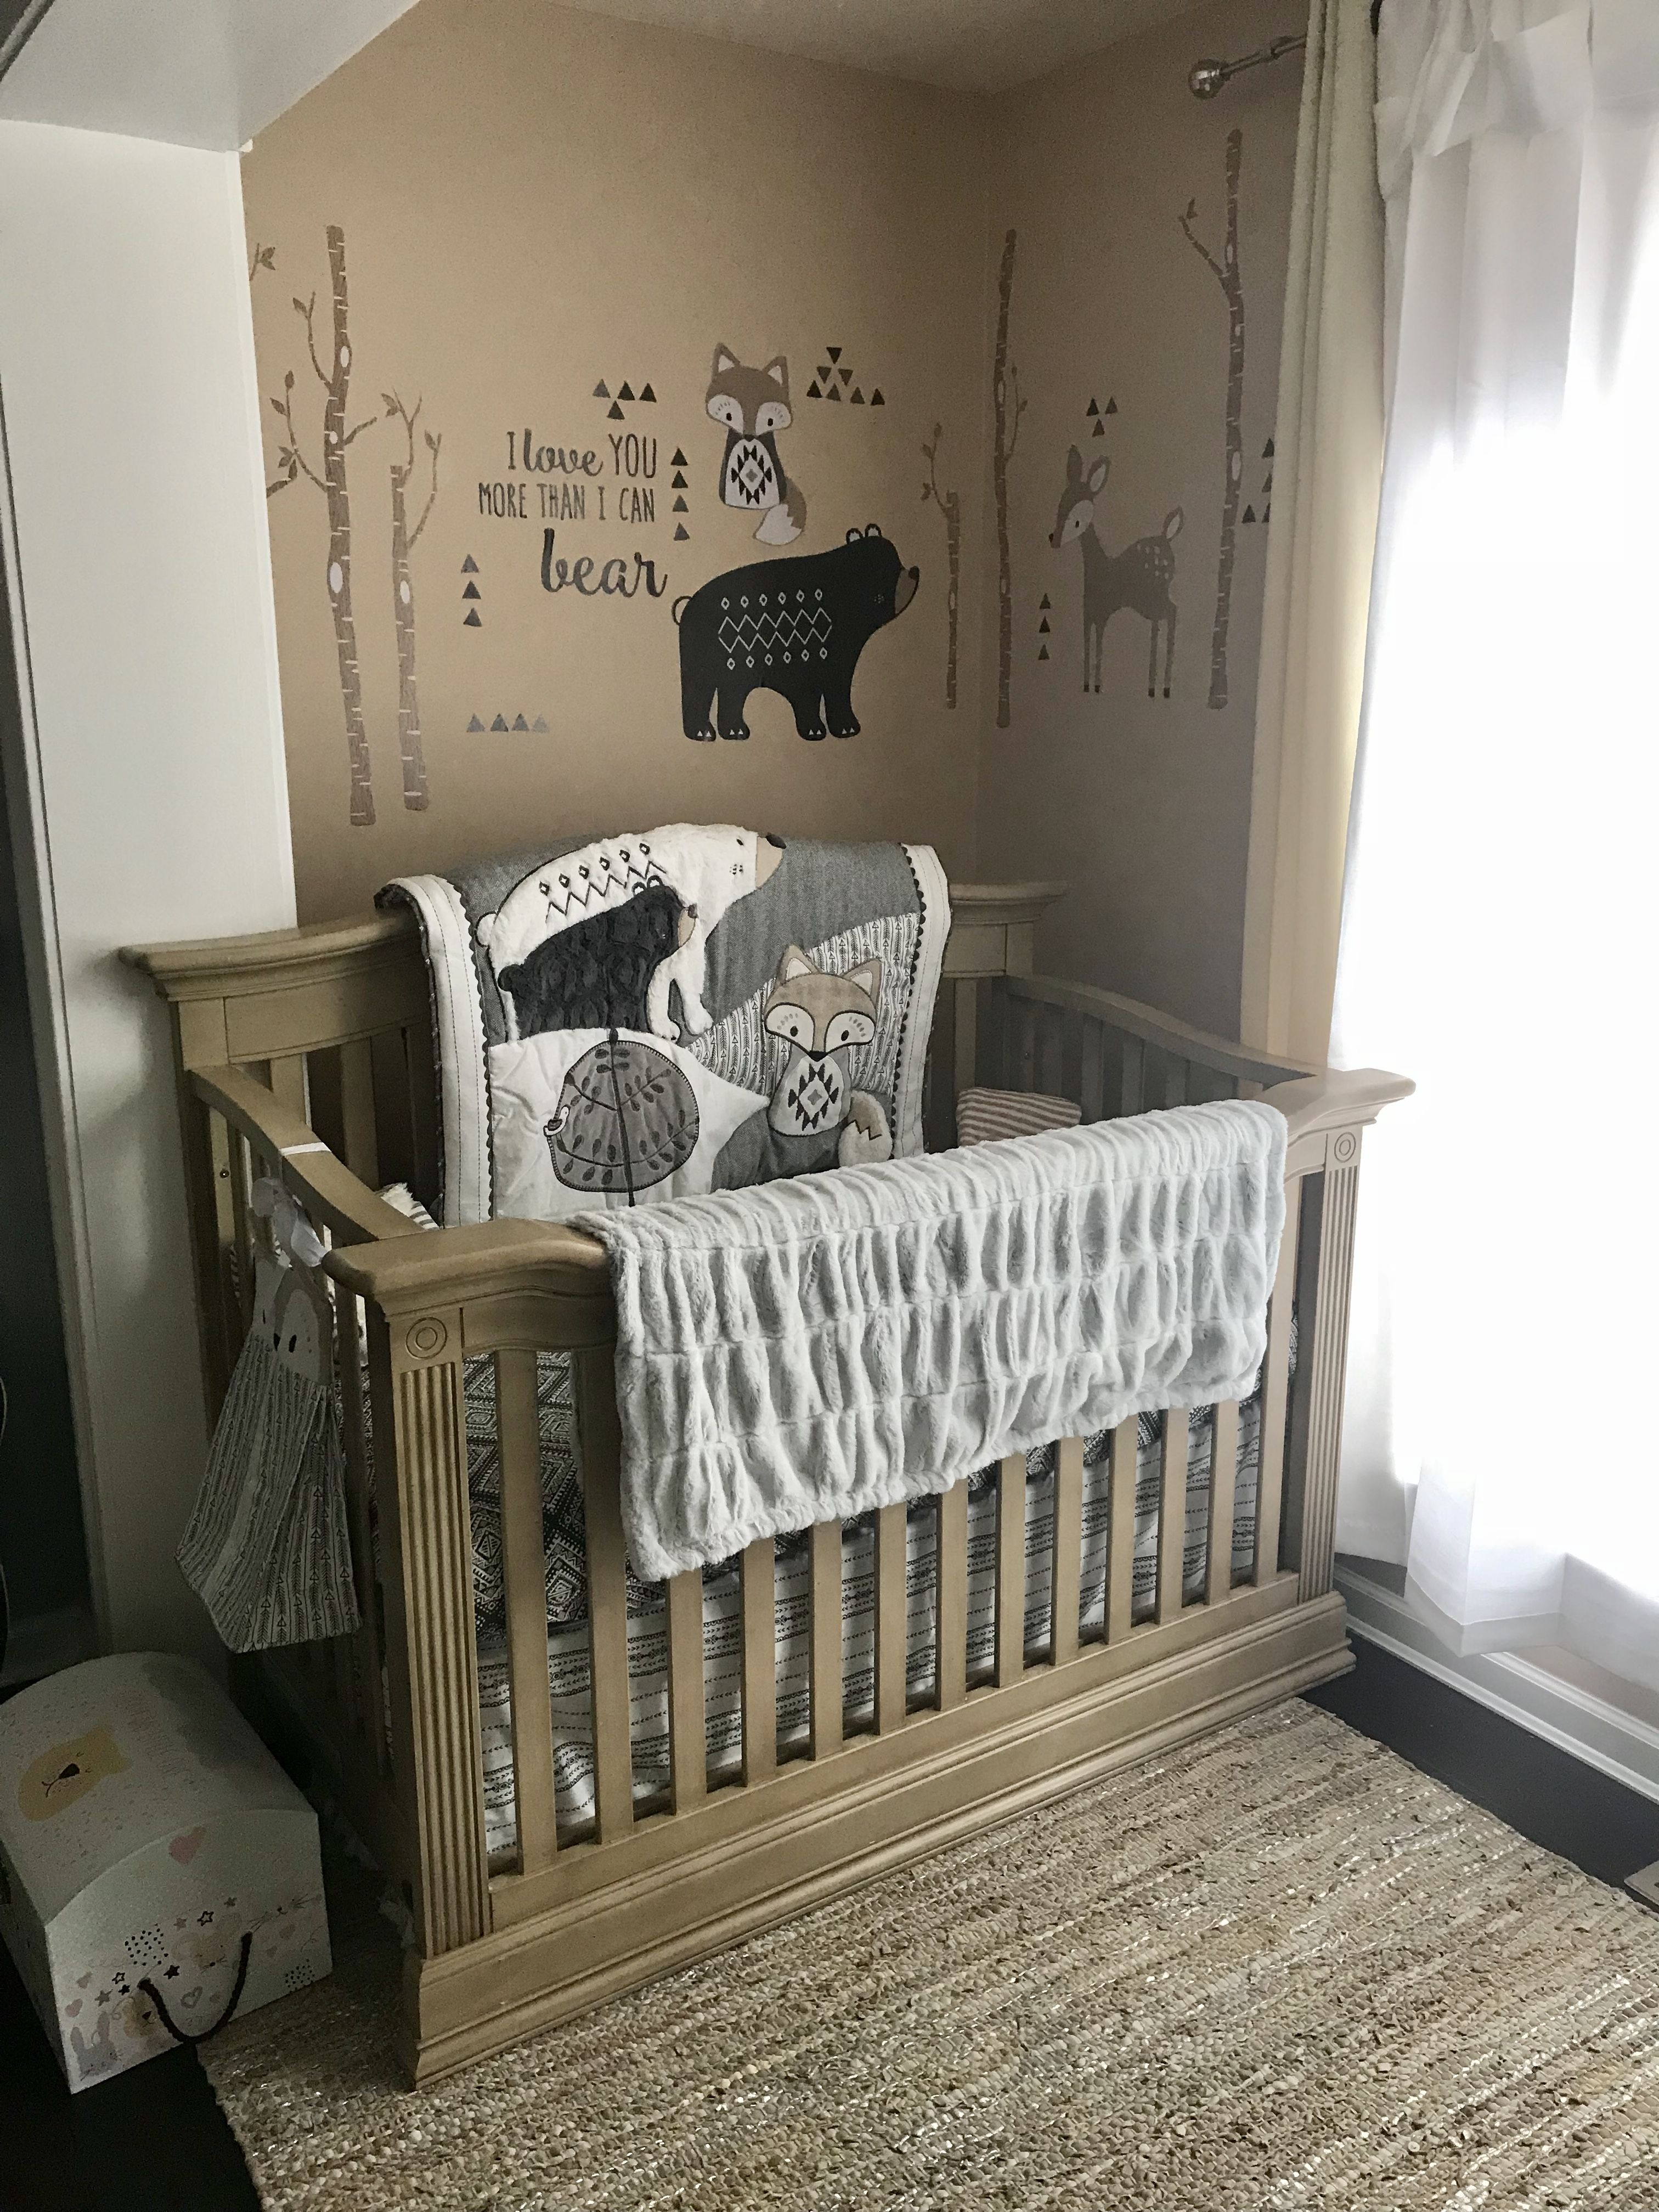 Baby Boy Woodland Theme Nursery In Master Bedroom With Images Baby Nursery Design Nursery Room Boy Baby Boy Themes